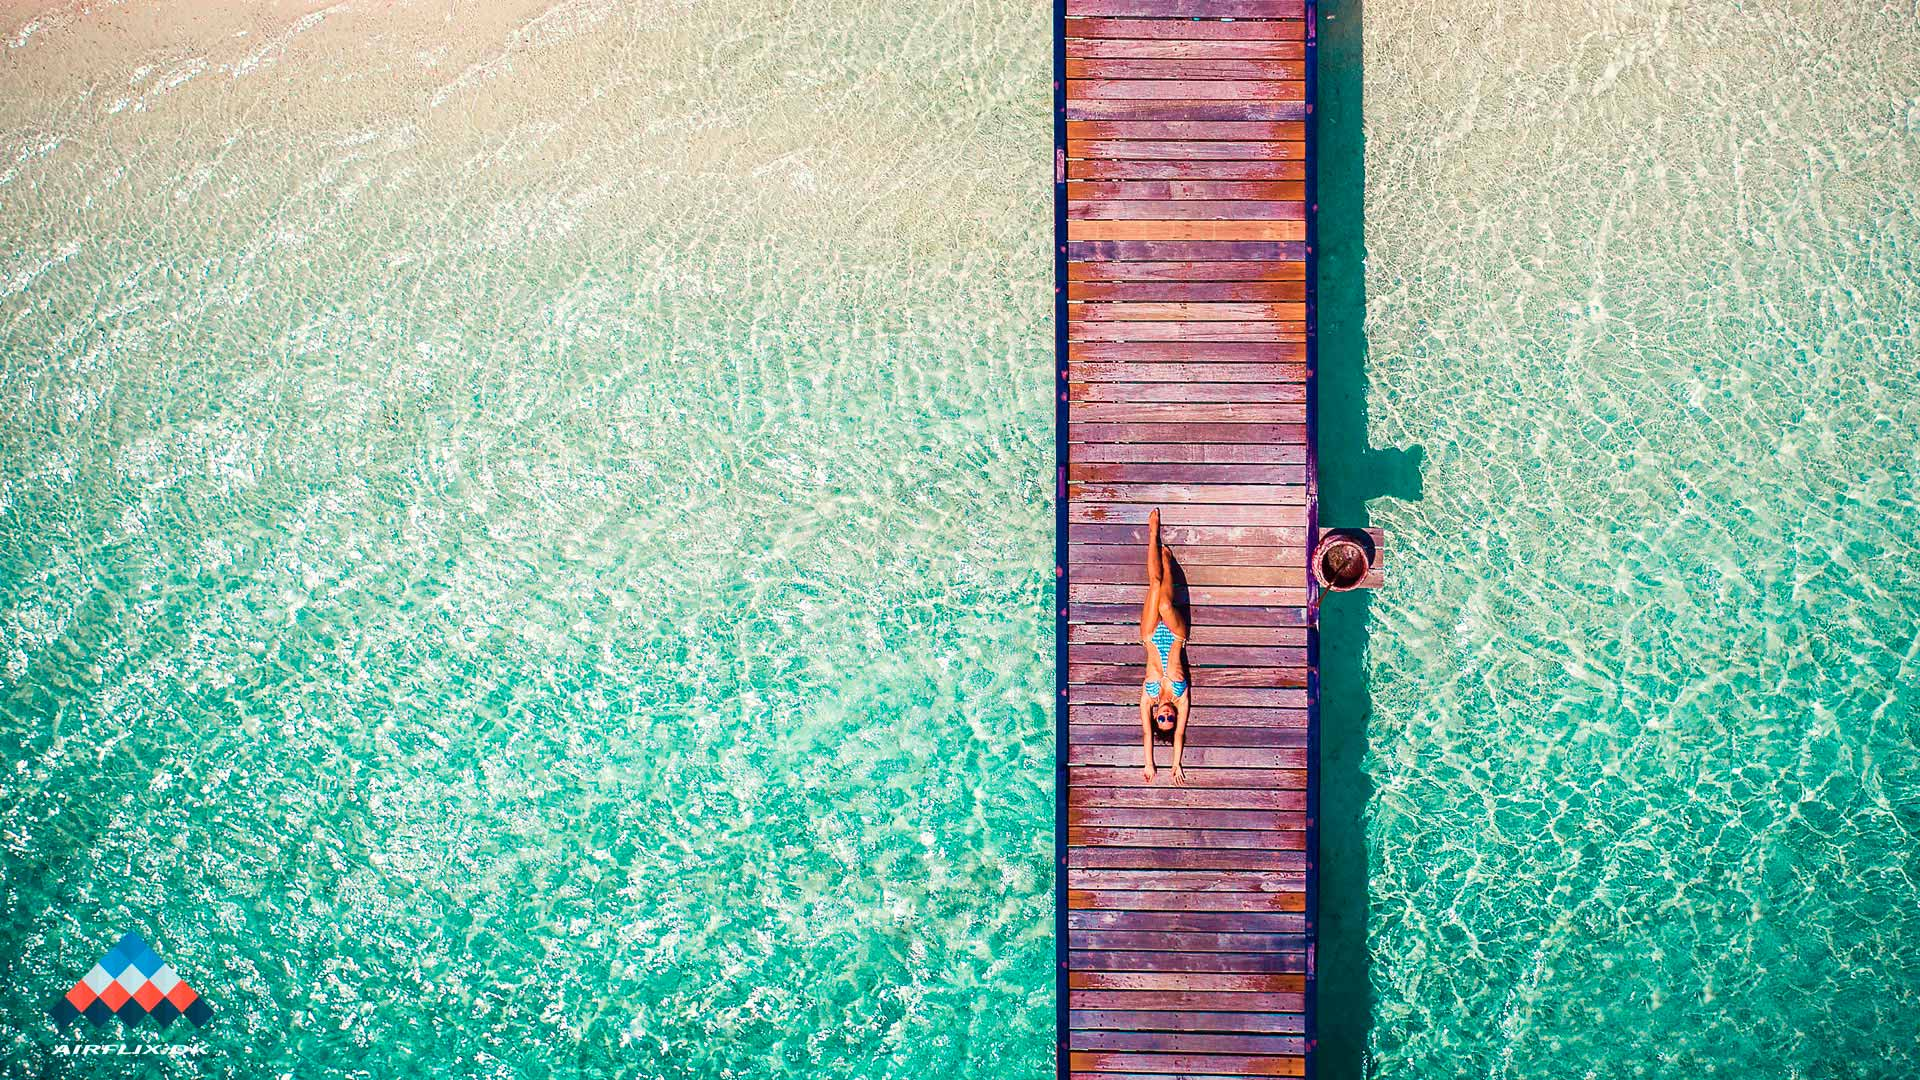 Jetty-maldives-drone-photo